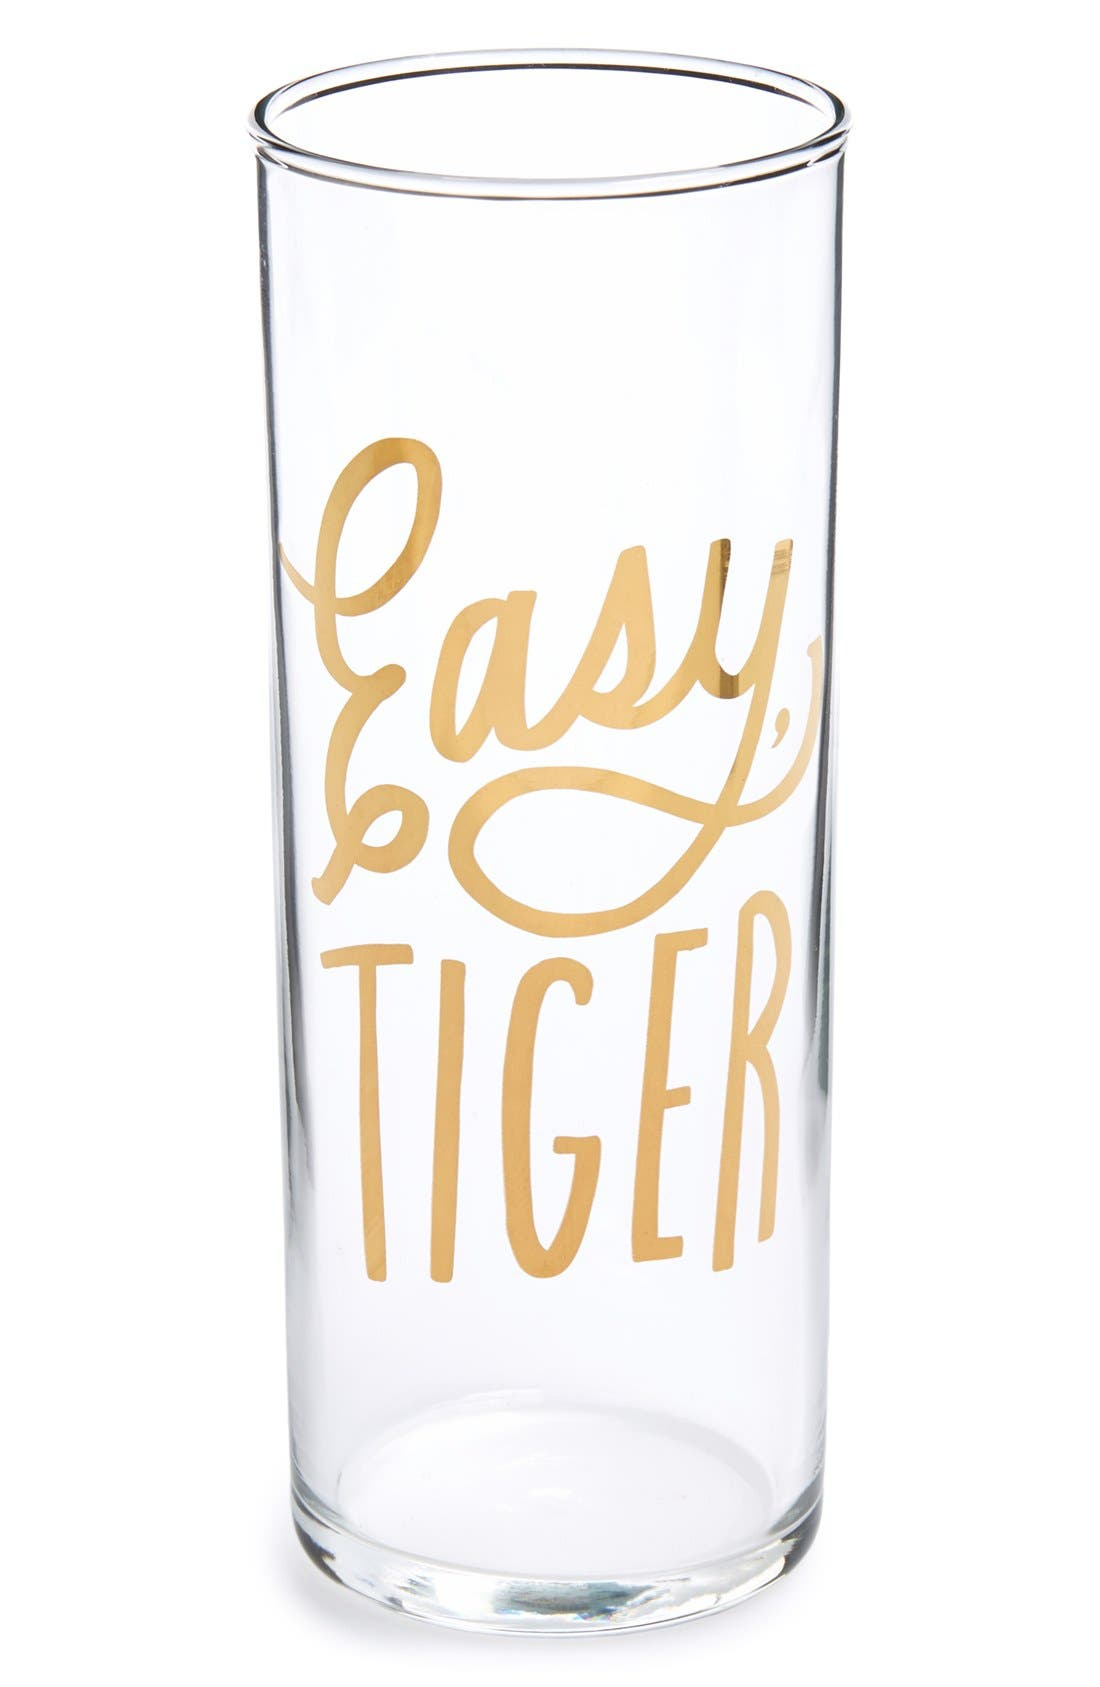 Alternate Image 1 Selected - Easy, Tiger Cocktail Glass